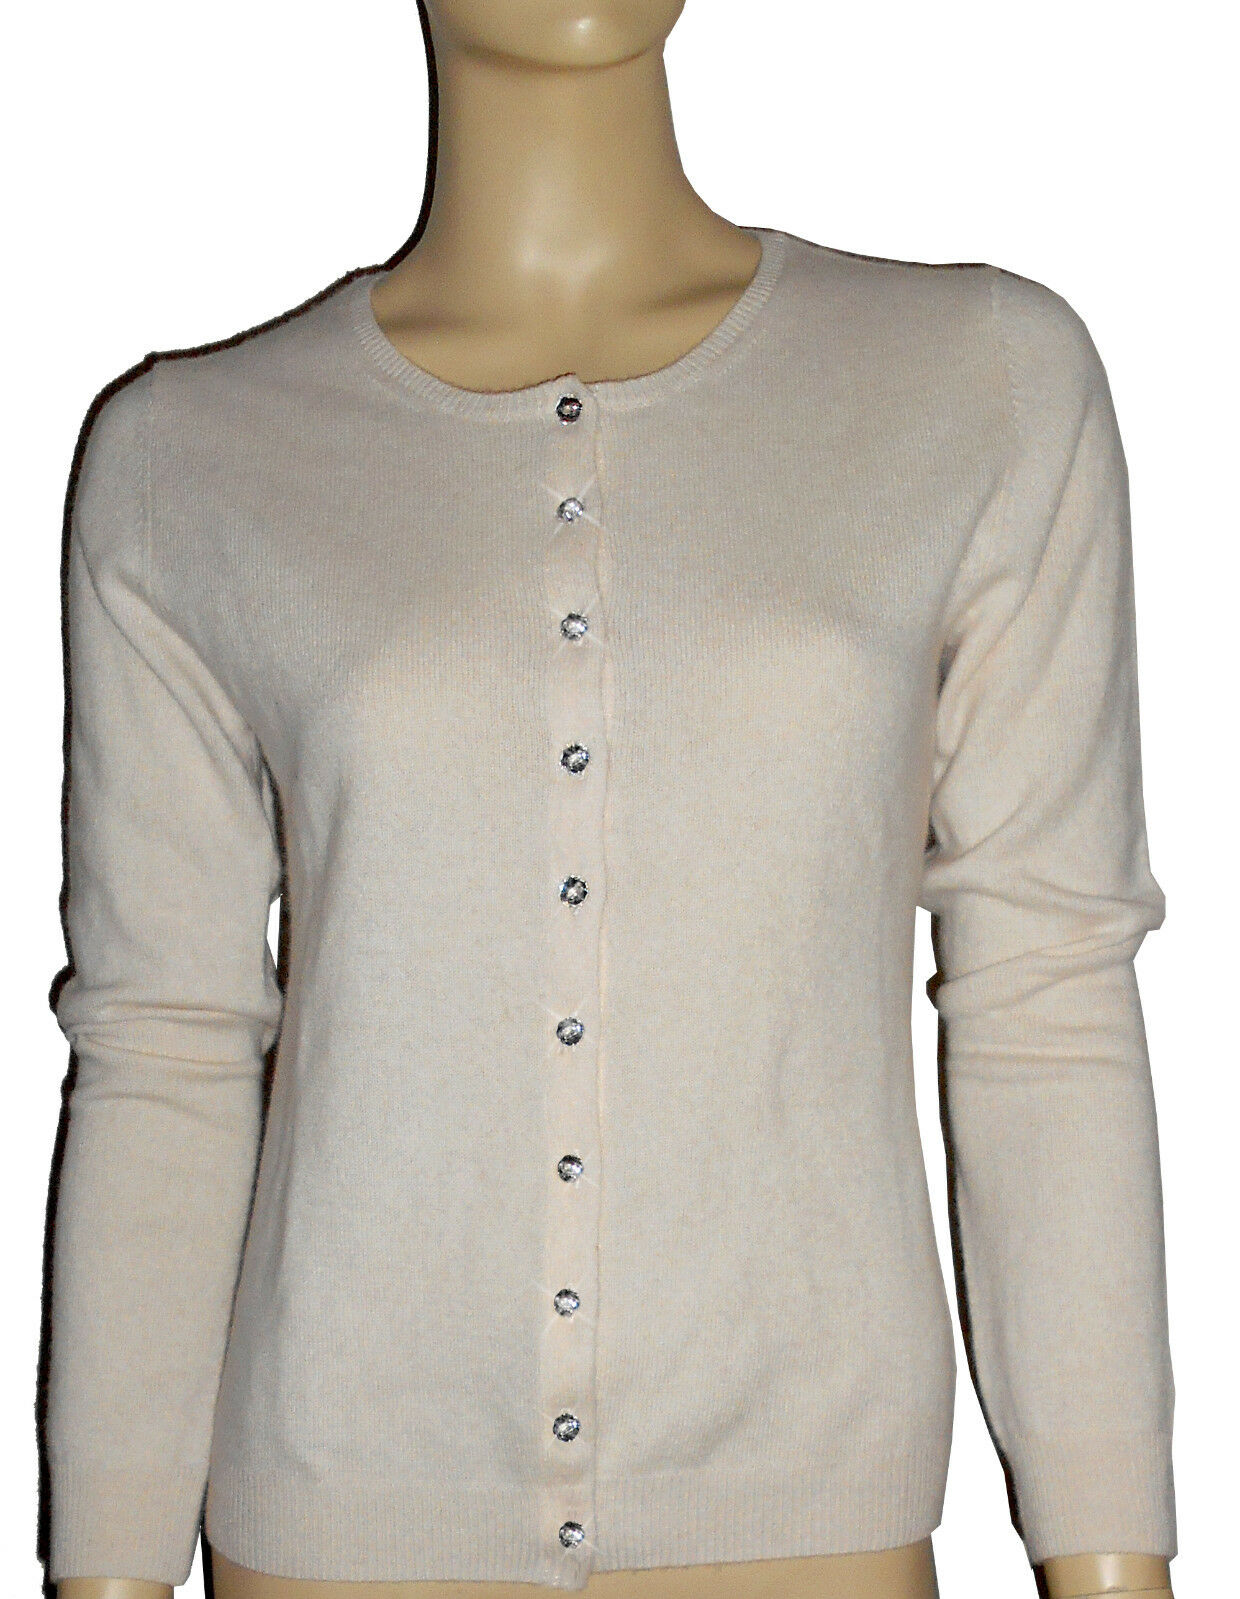 Luxe Oh` Dor 100% Cashmere Cardigan Luxury Nizza Pearl White Crystal 42 44 M L